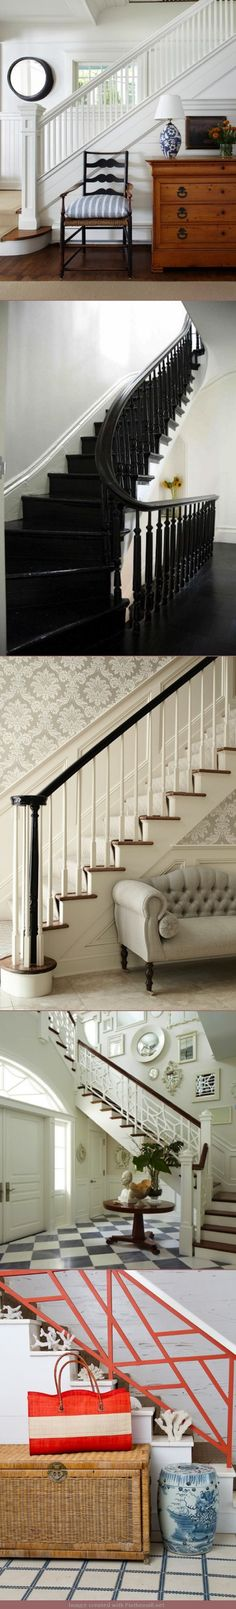 Tobi's Entry. Stair Bannister color options: 1) crisp white stair bannister 2) dramatic all black bannister 3) combination of black handrail but white spindles 4) White with a stained handrail 5) painting part or all of the bannister a color